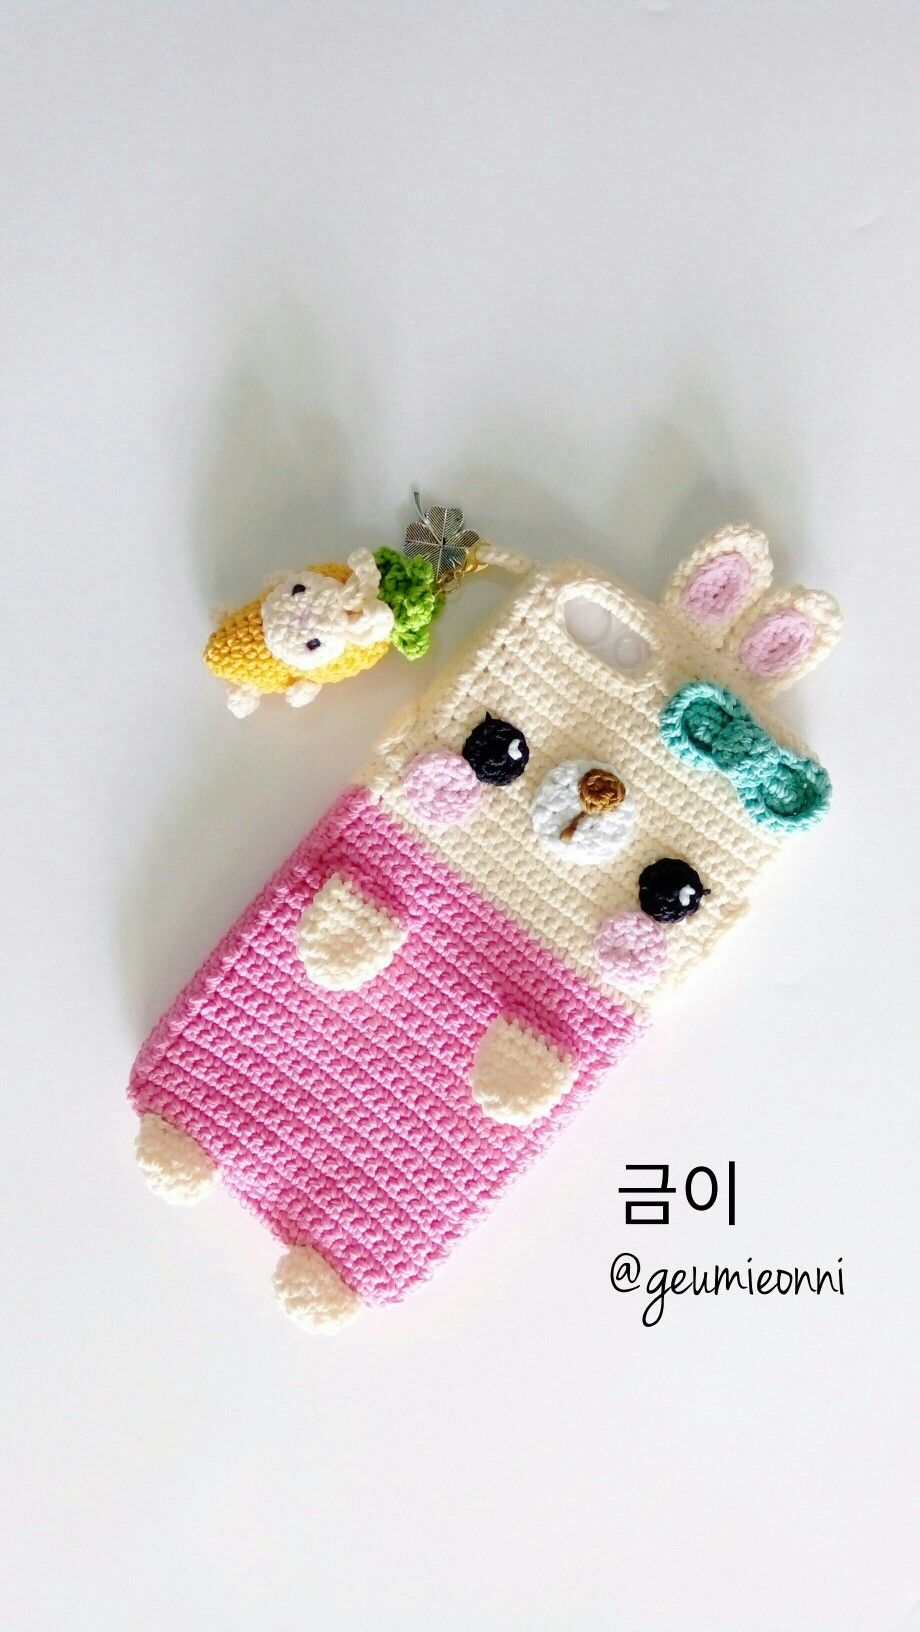 Amazon.com: Kawaii Amigurumi: 28 Cute Animal Crochet Patterns ... | 1632x920